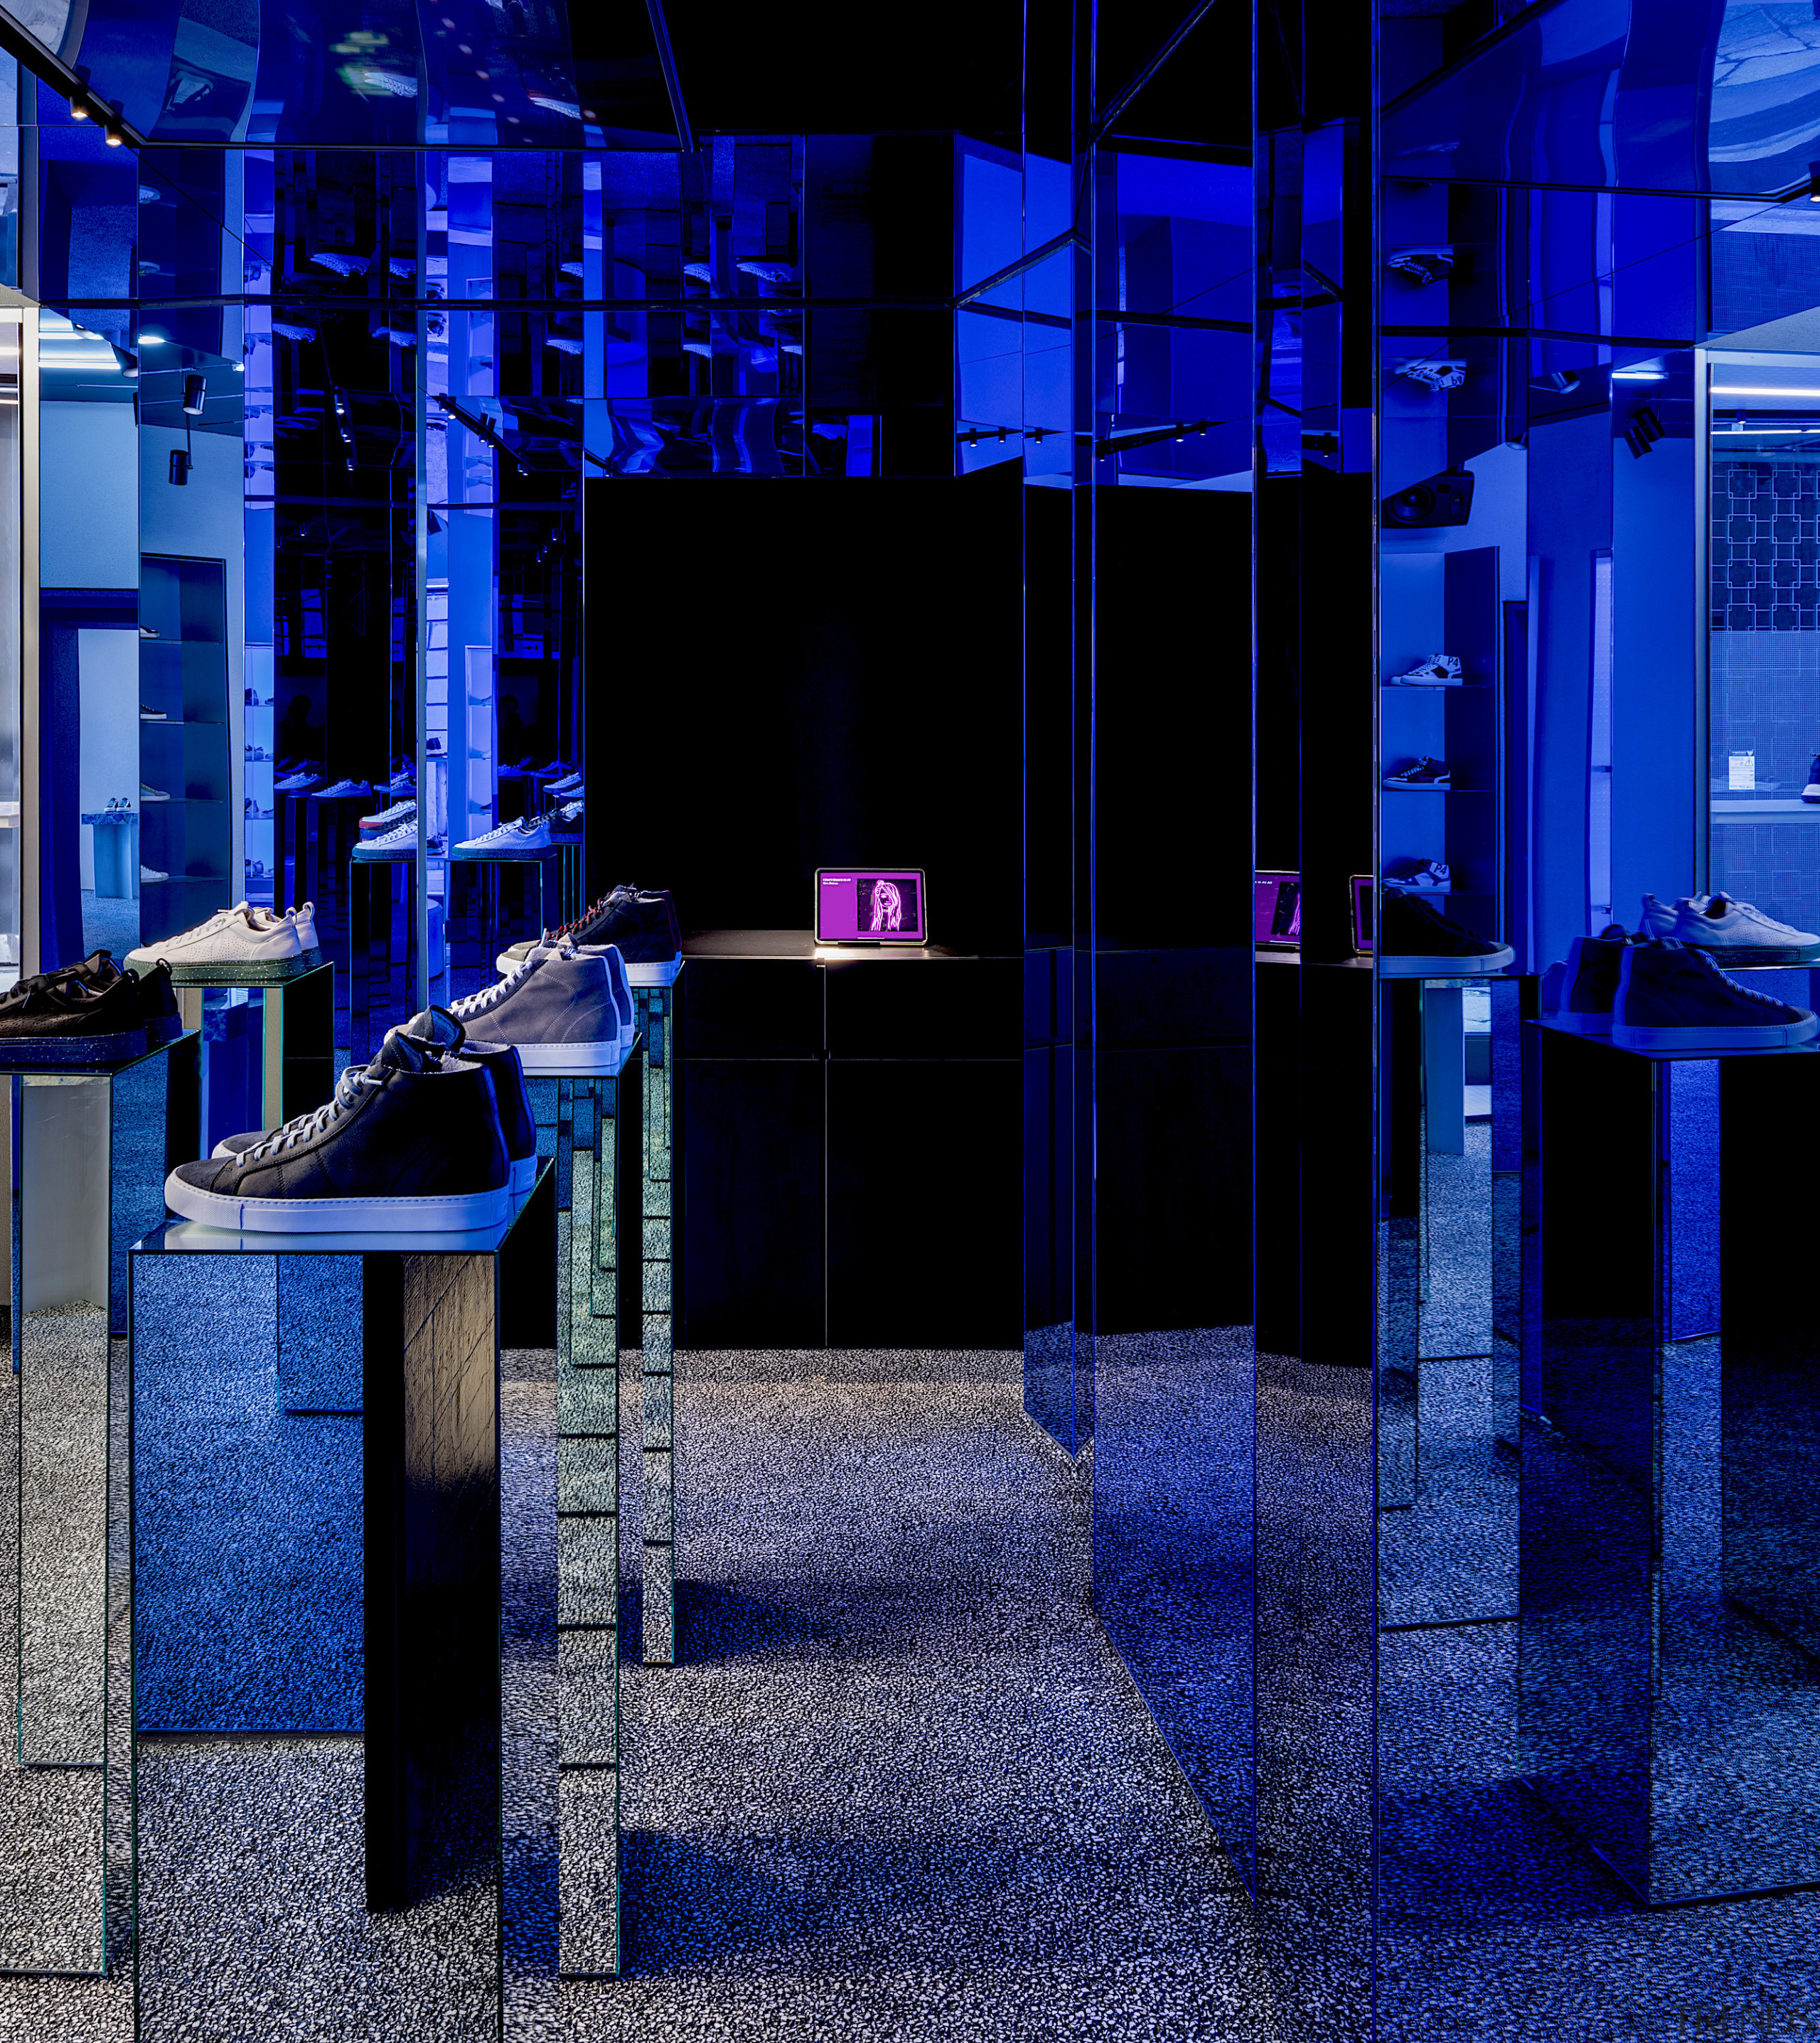 The new P448 shoe store by architects Piuarch blue, black